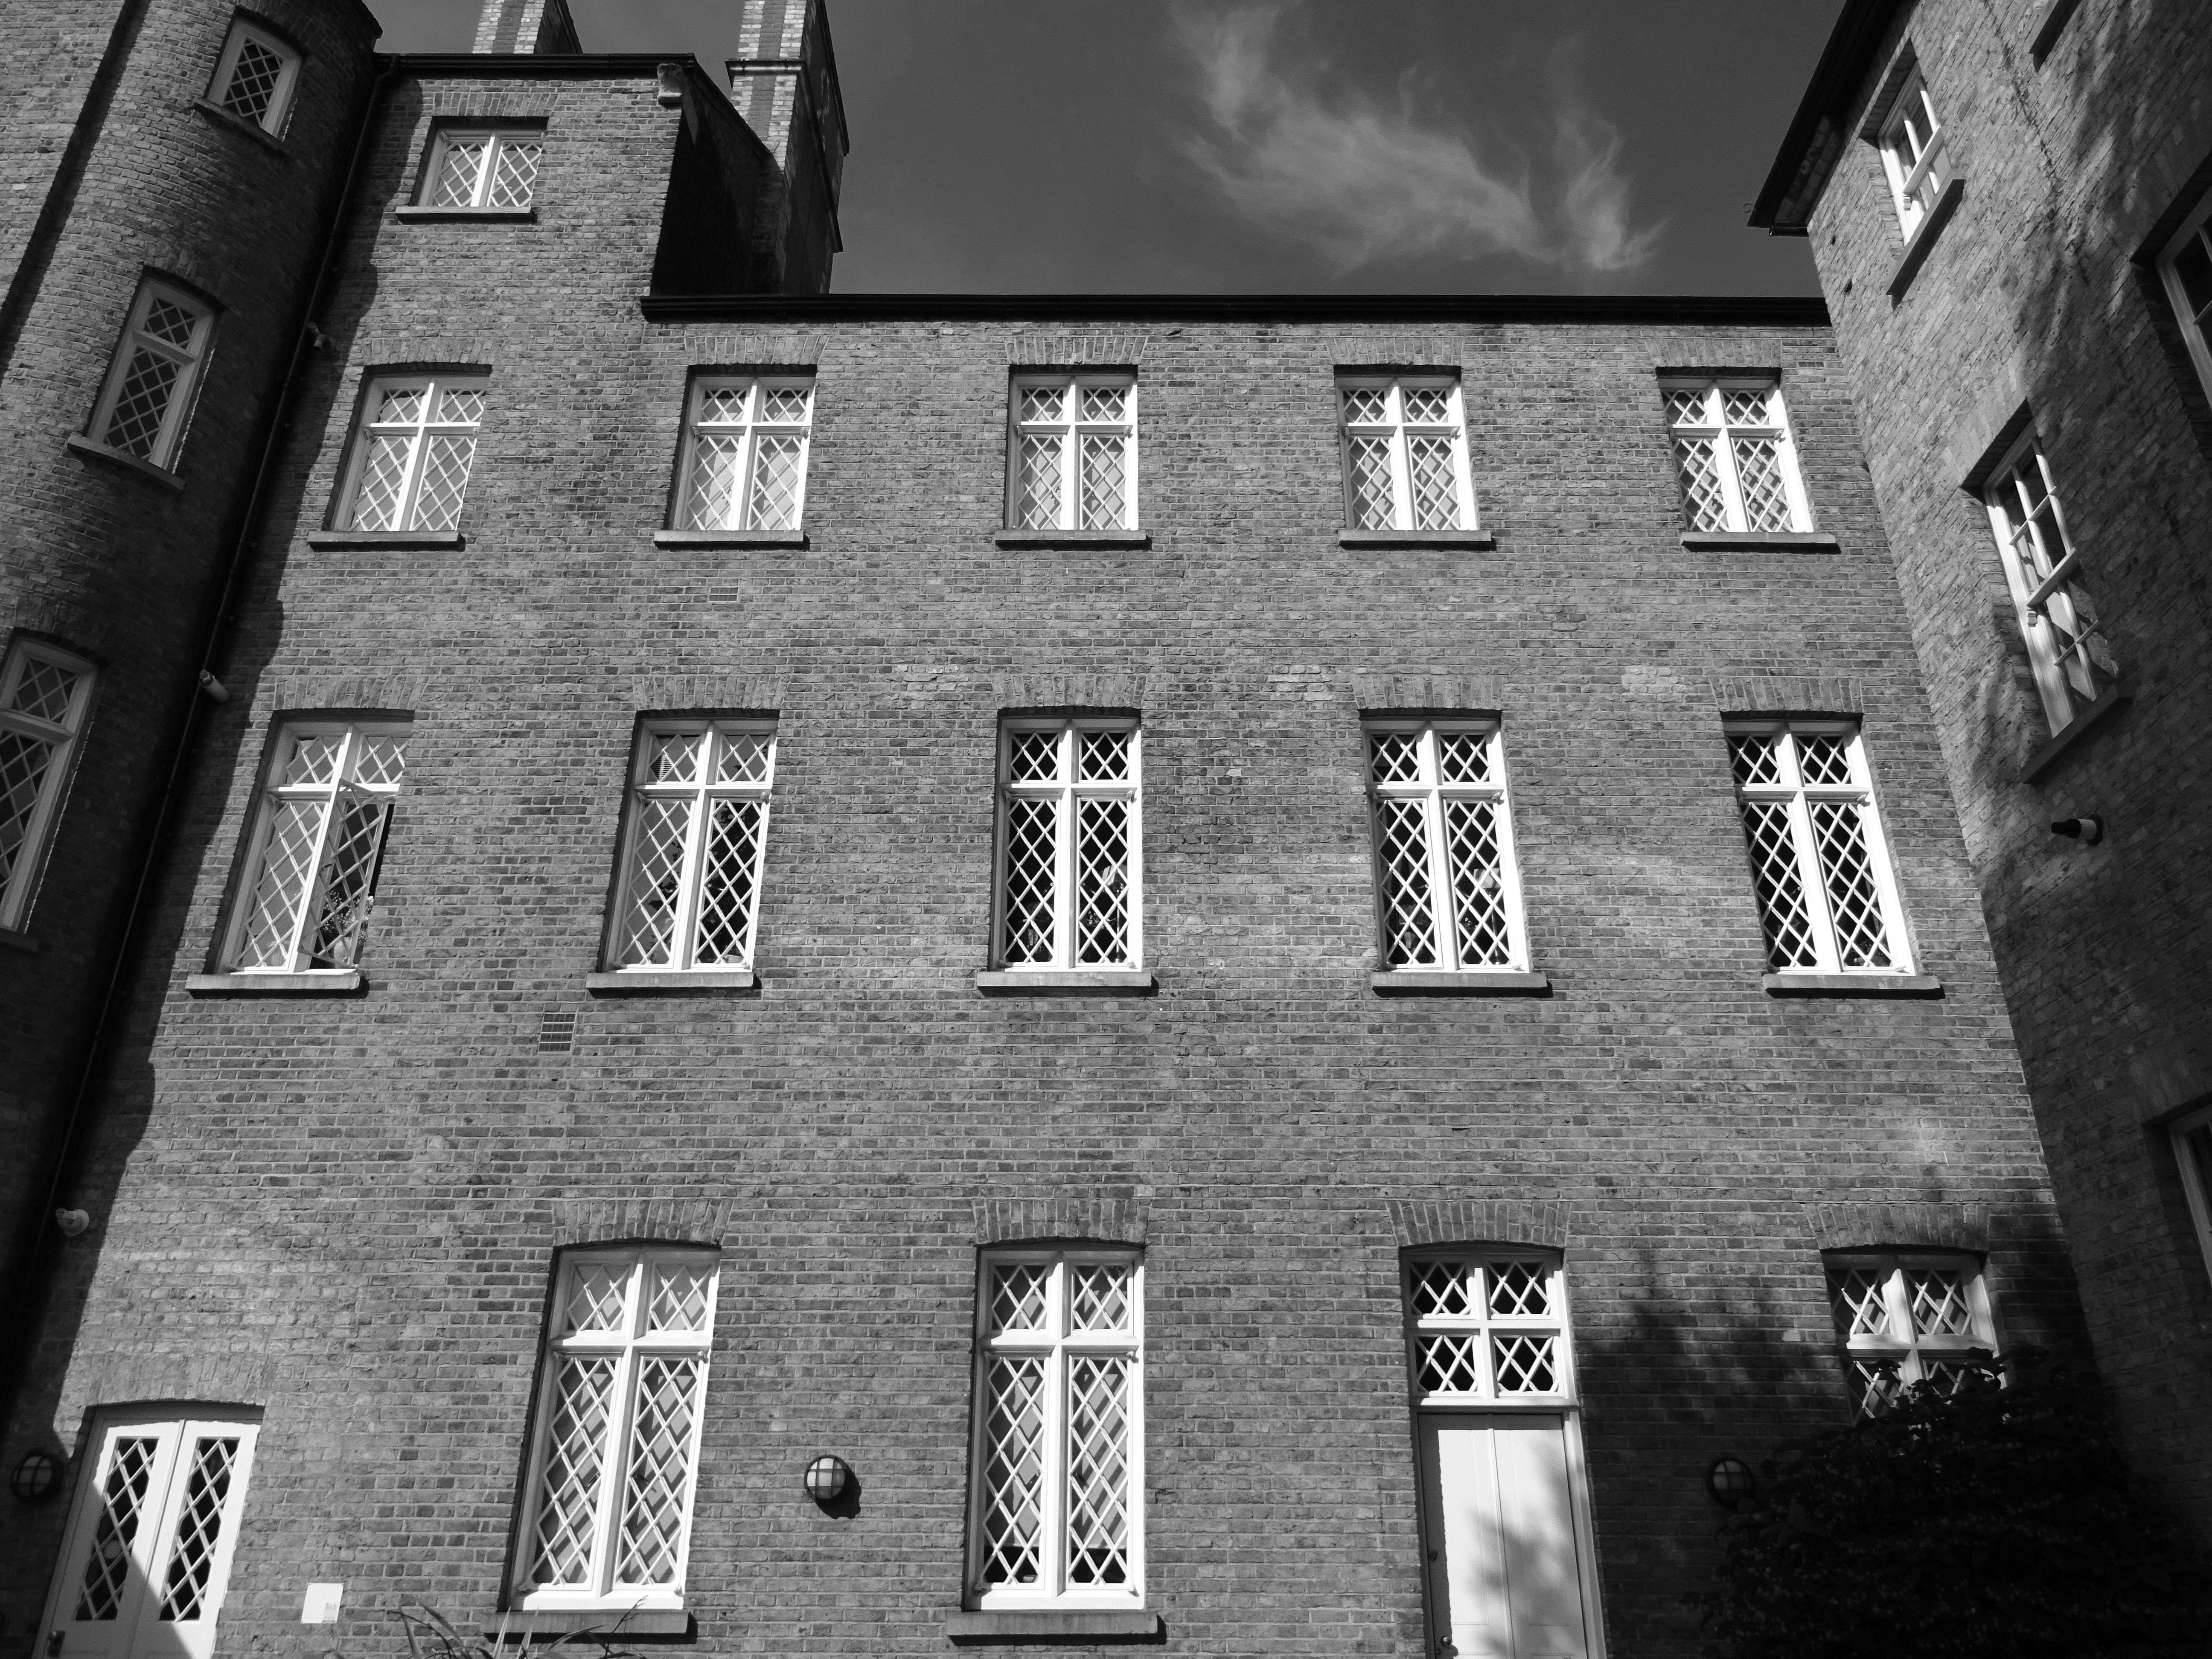 Grayscale Photography of 3-storey Building